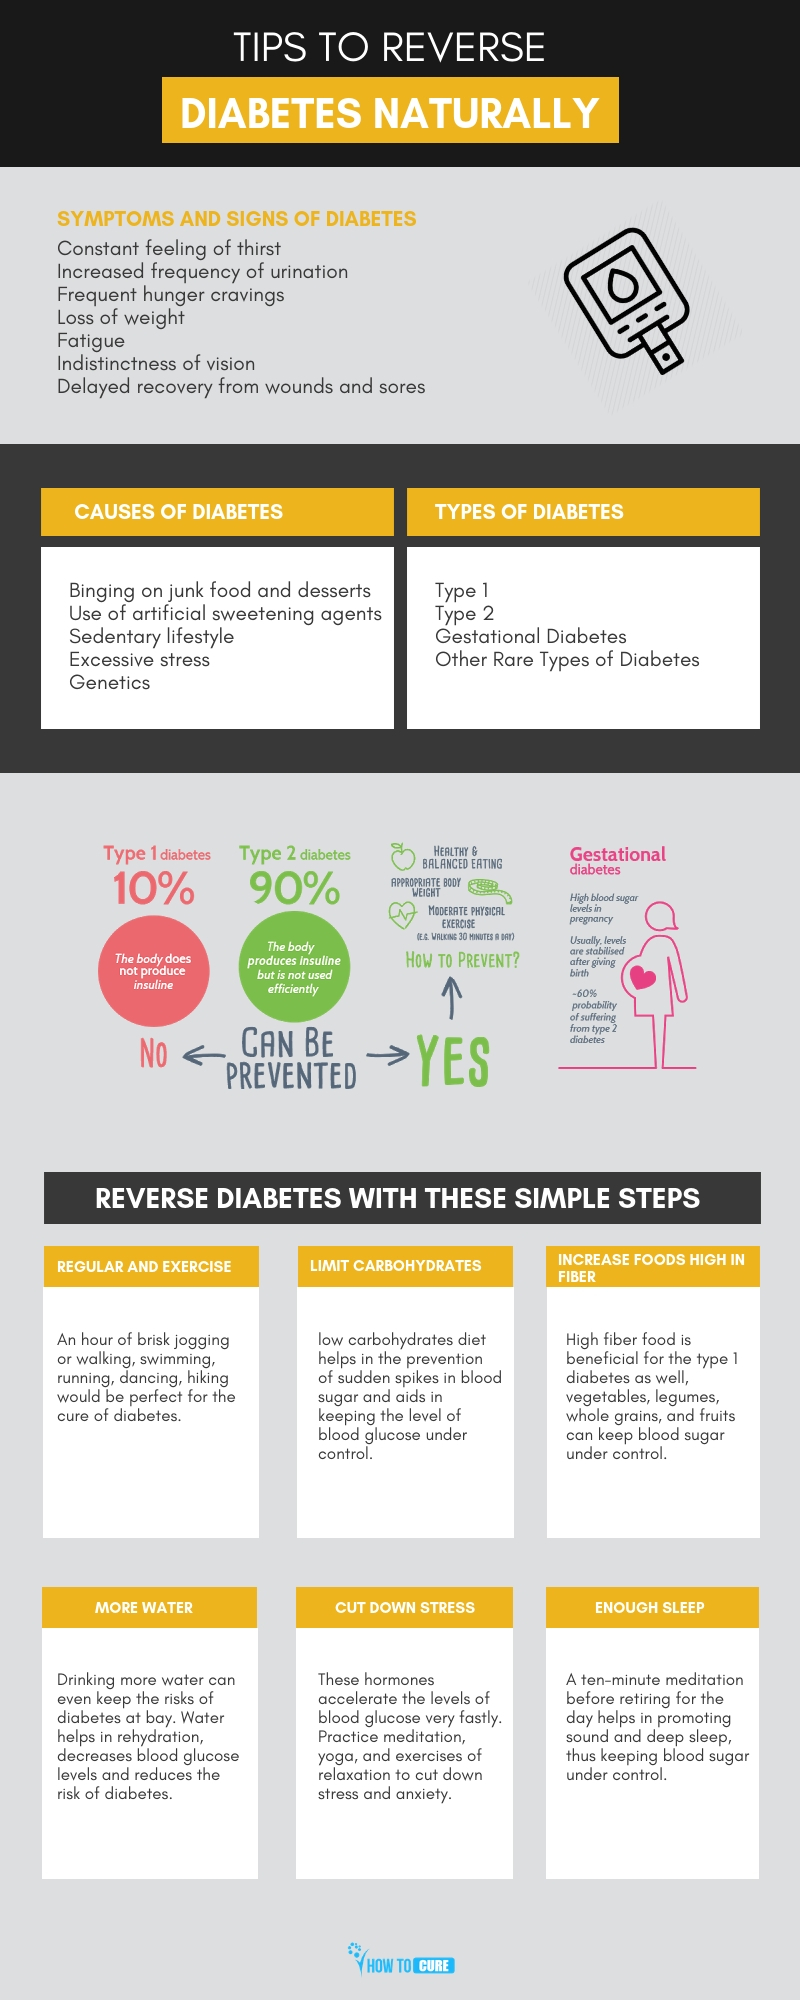 reverse diabetes with these simple steps